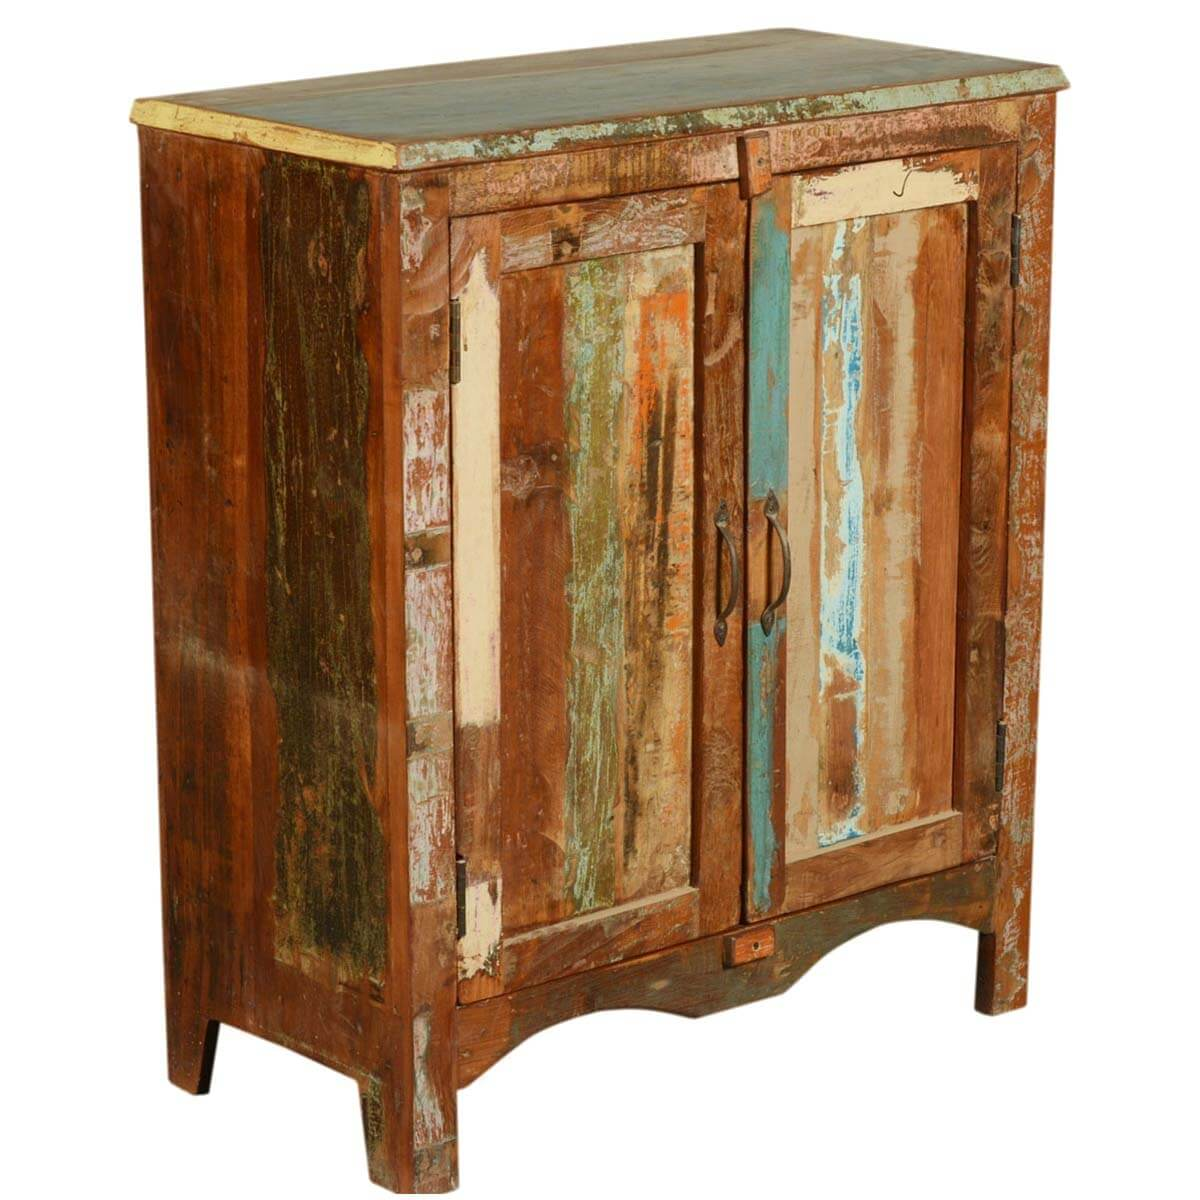 Reclaimed cabinets